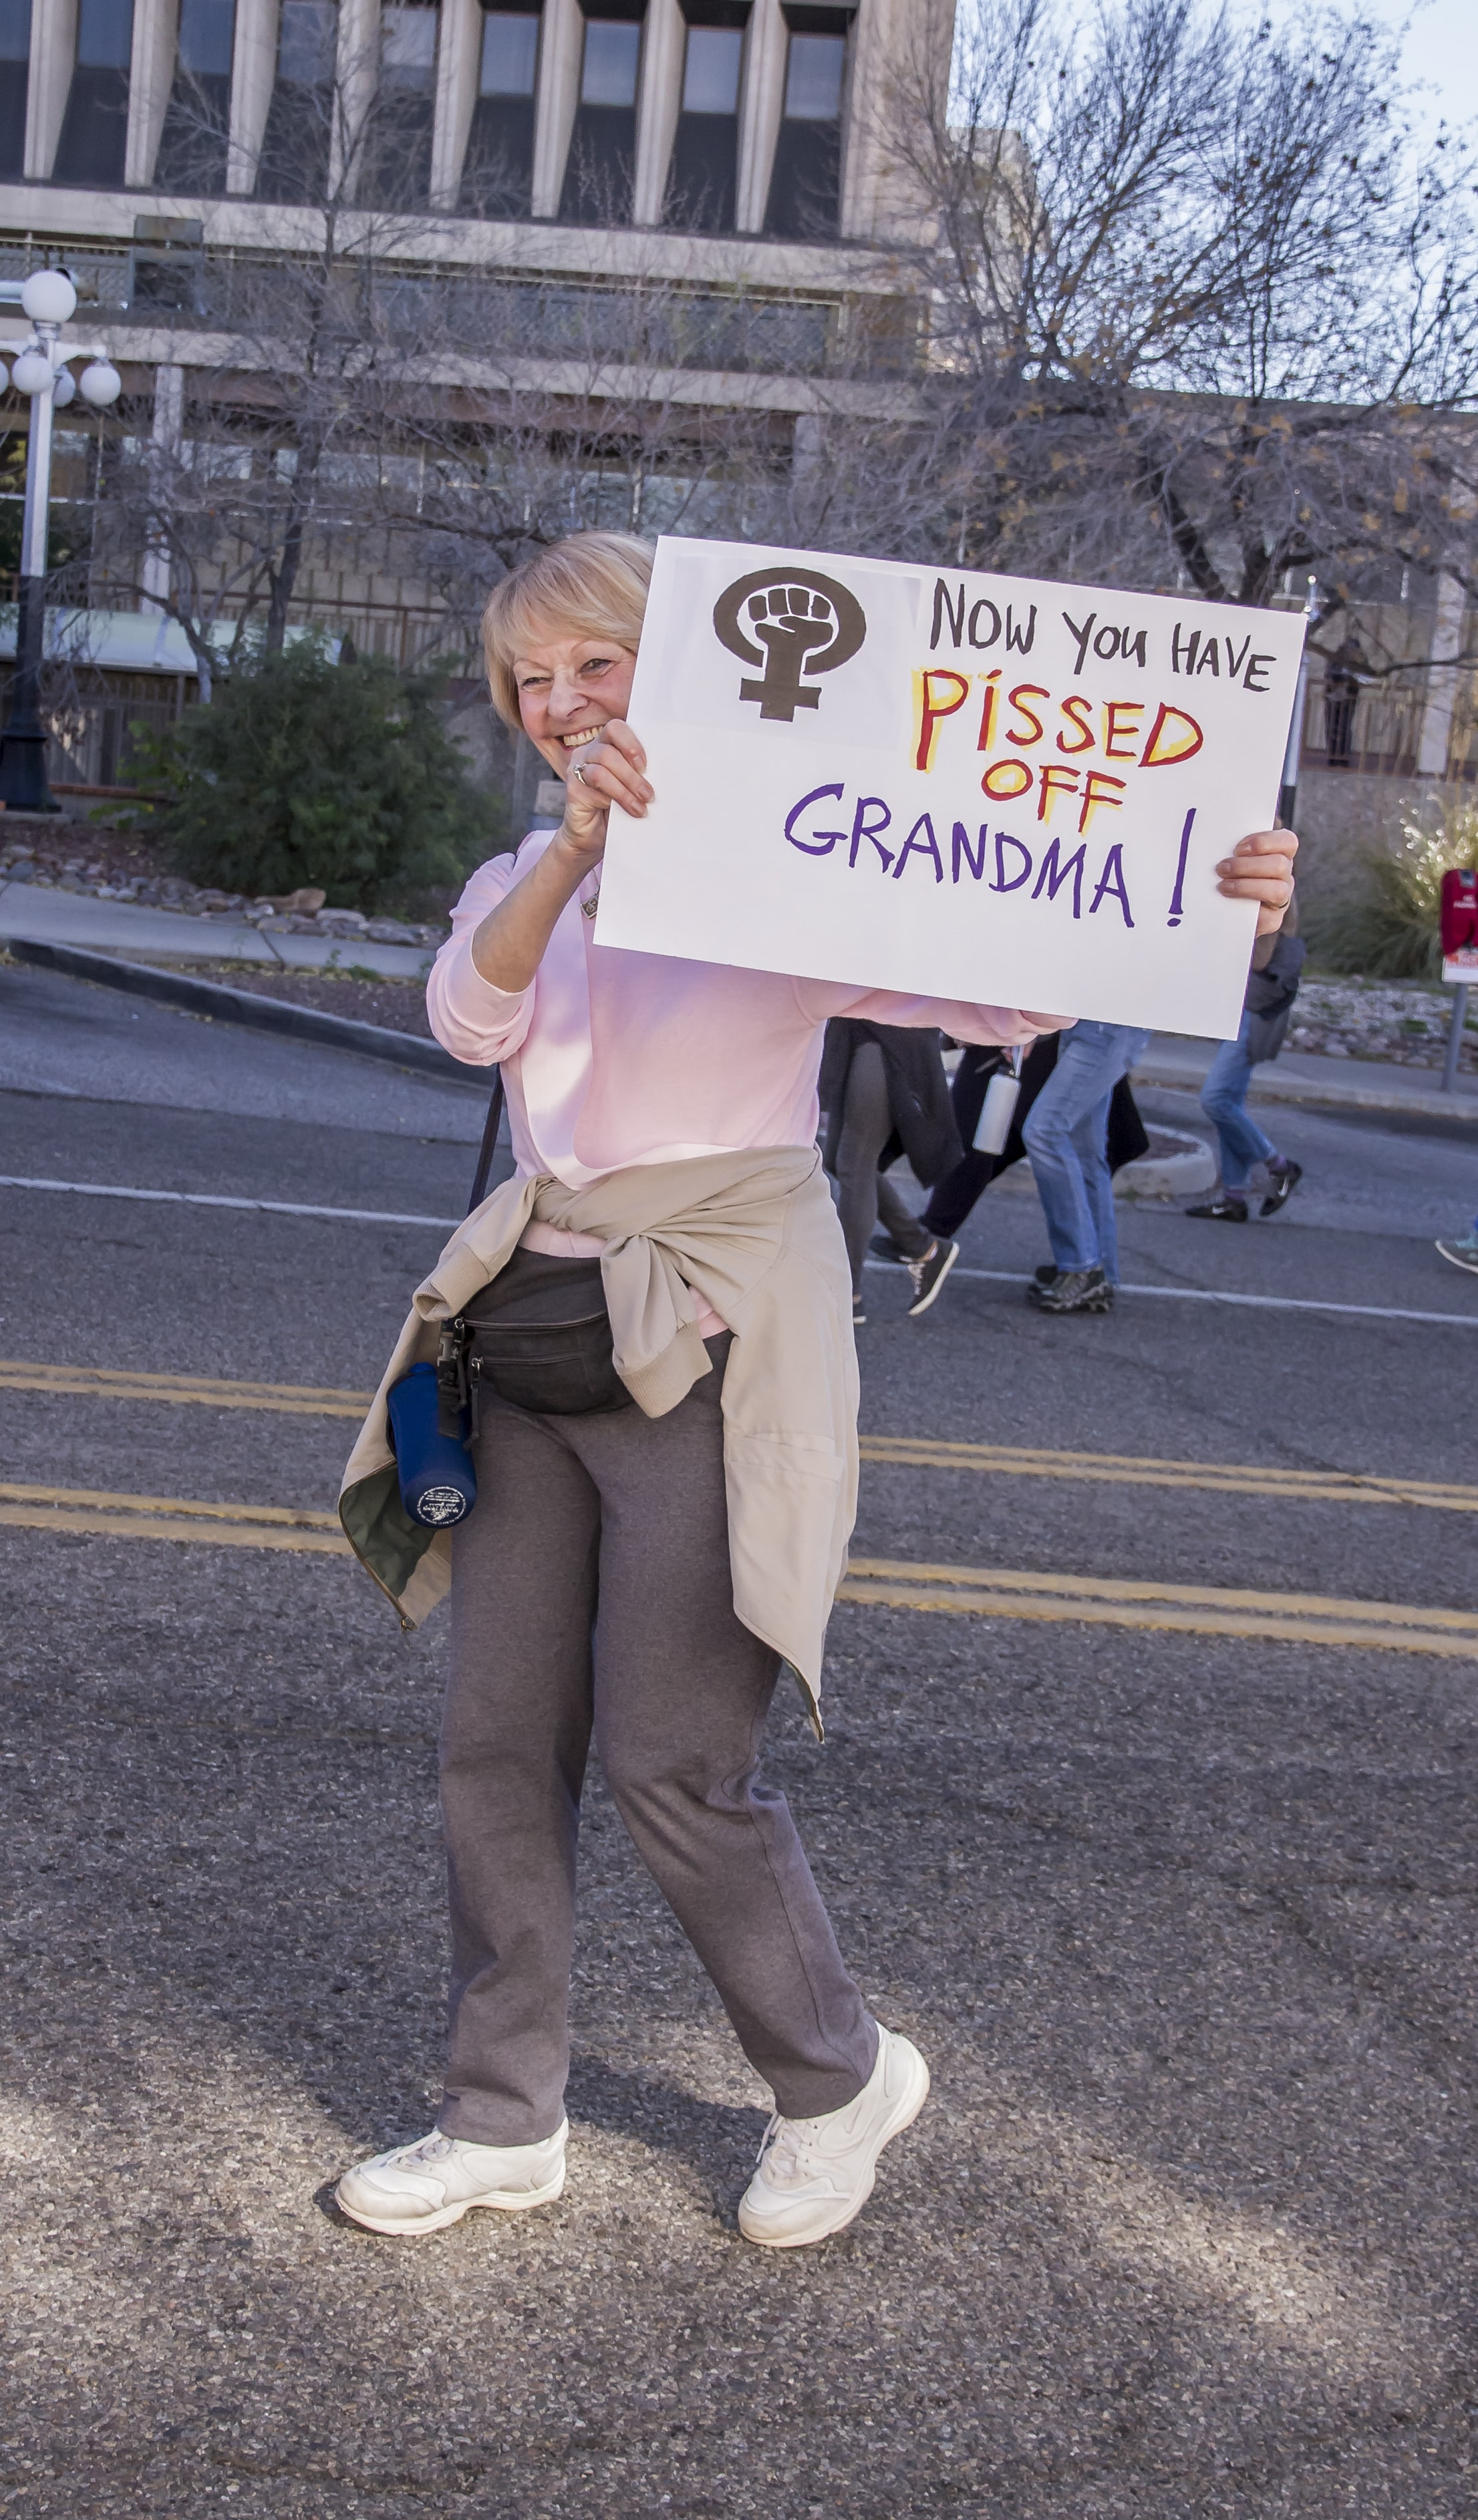 woman walking while holding now you have pissed off grandma! sign